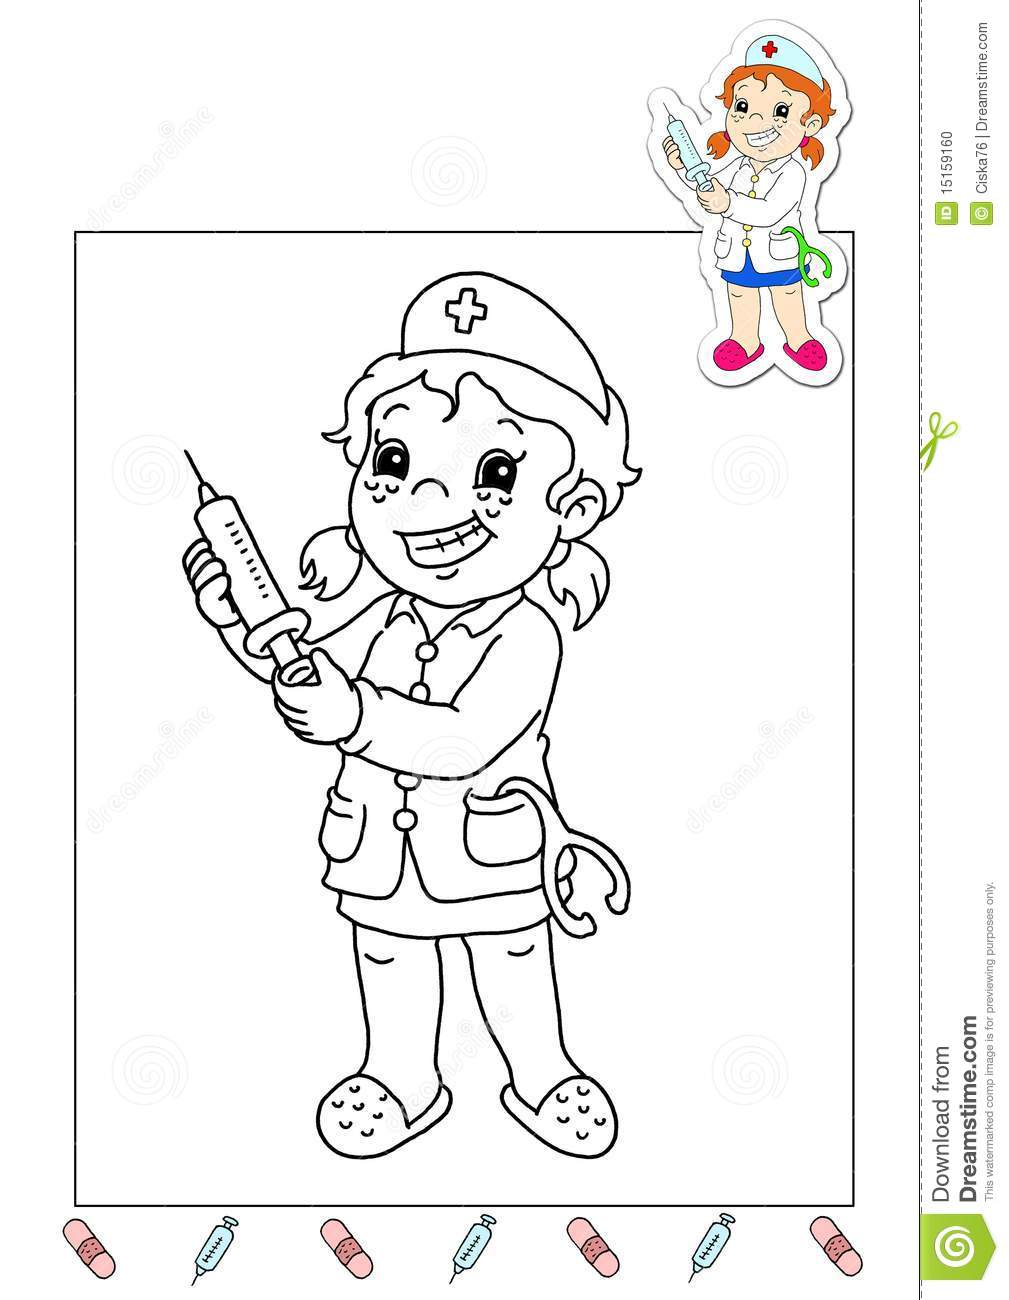 Coloring Book Of The Works 32 - Nurse Stock Illustration ...